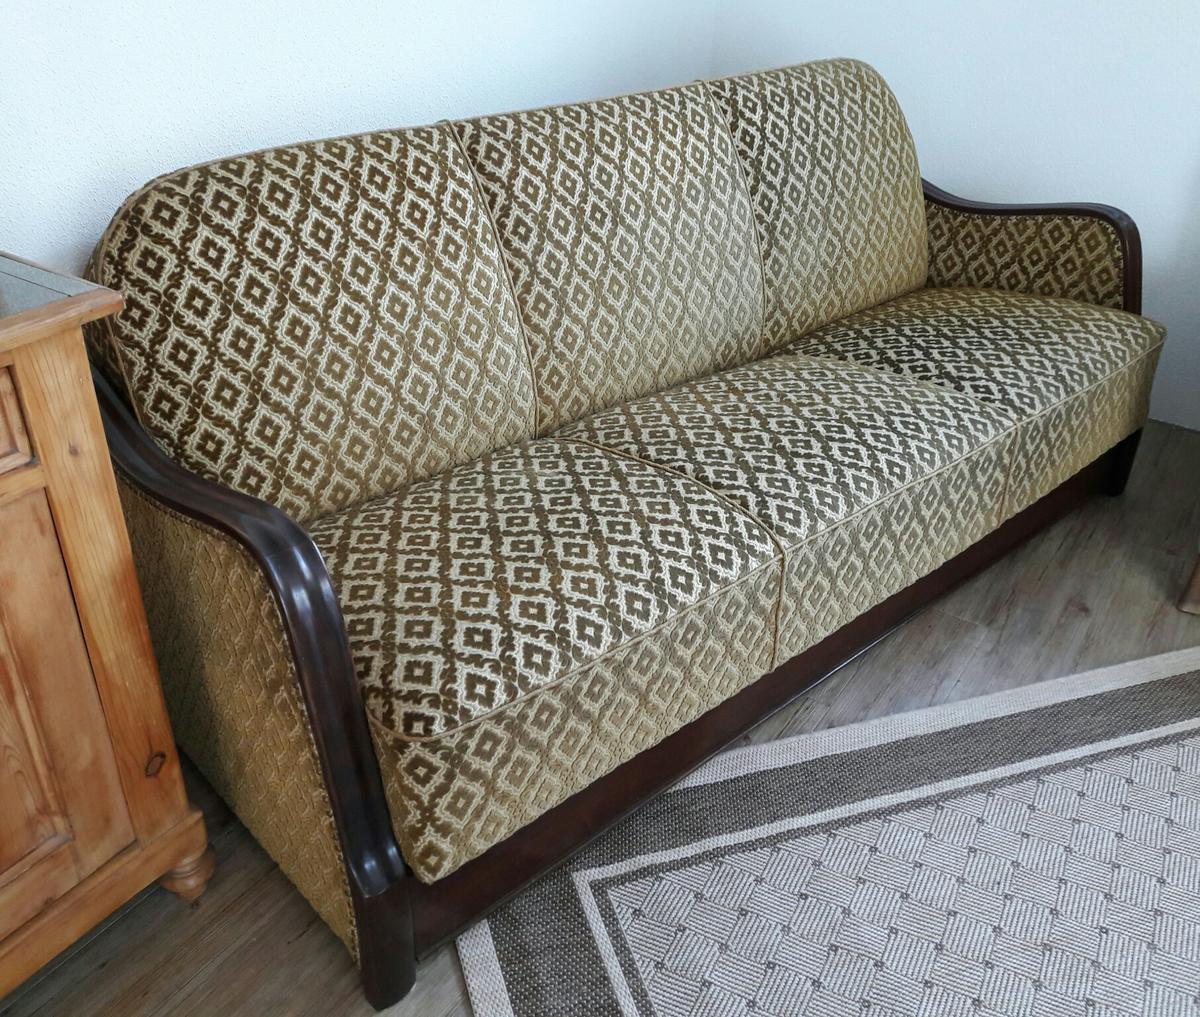 Schlafcouch Vintage Sofa Schlafcouch Retro Vintage Antik In 58809 Neuenrade For 95 00